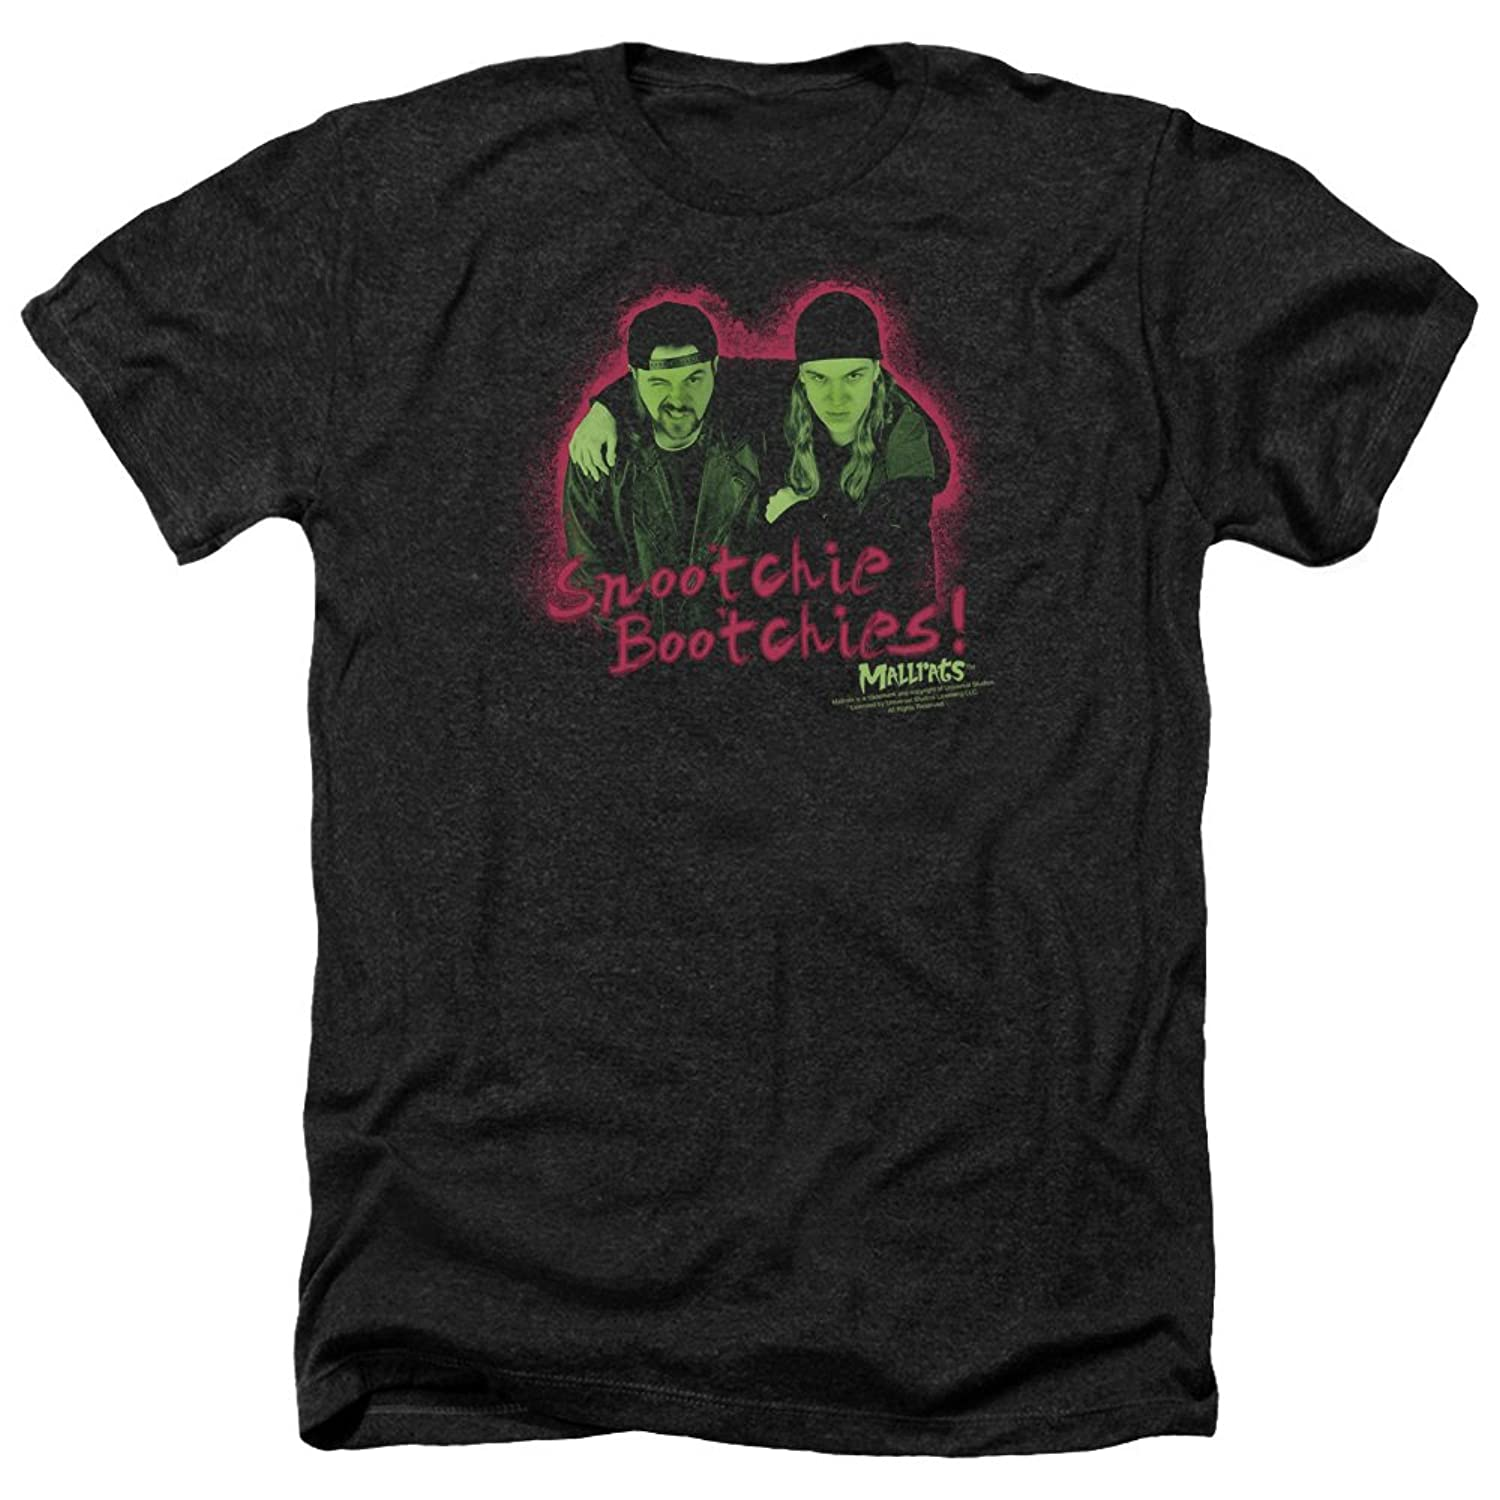 Mallrats Romantic Comedy Movie Snootchie Bootchies Adult Heather T-Shirt Tee